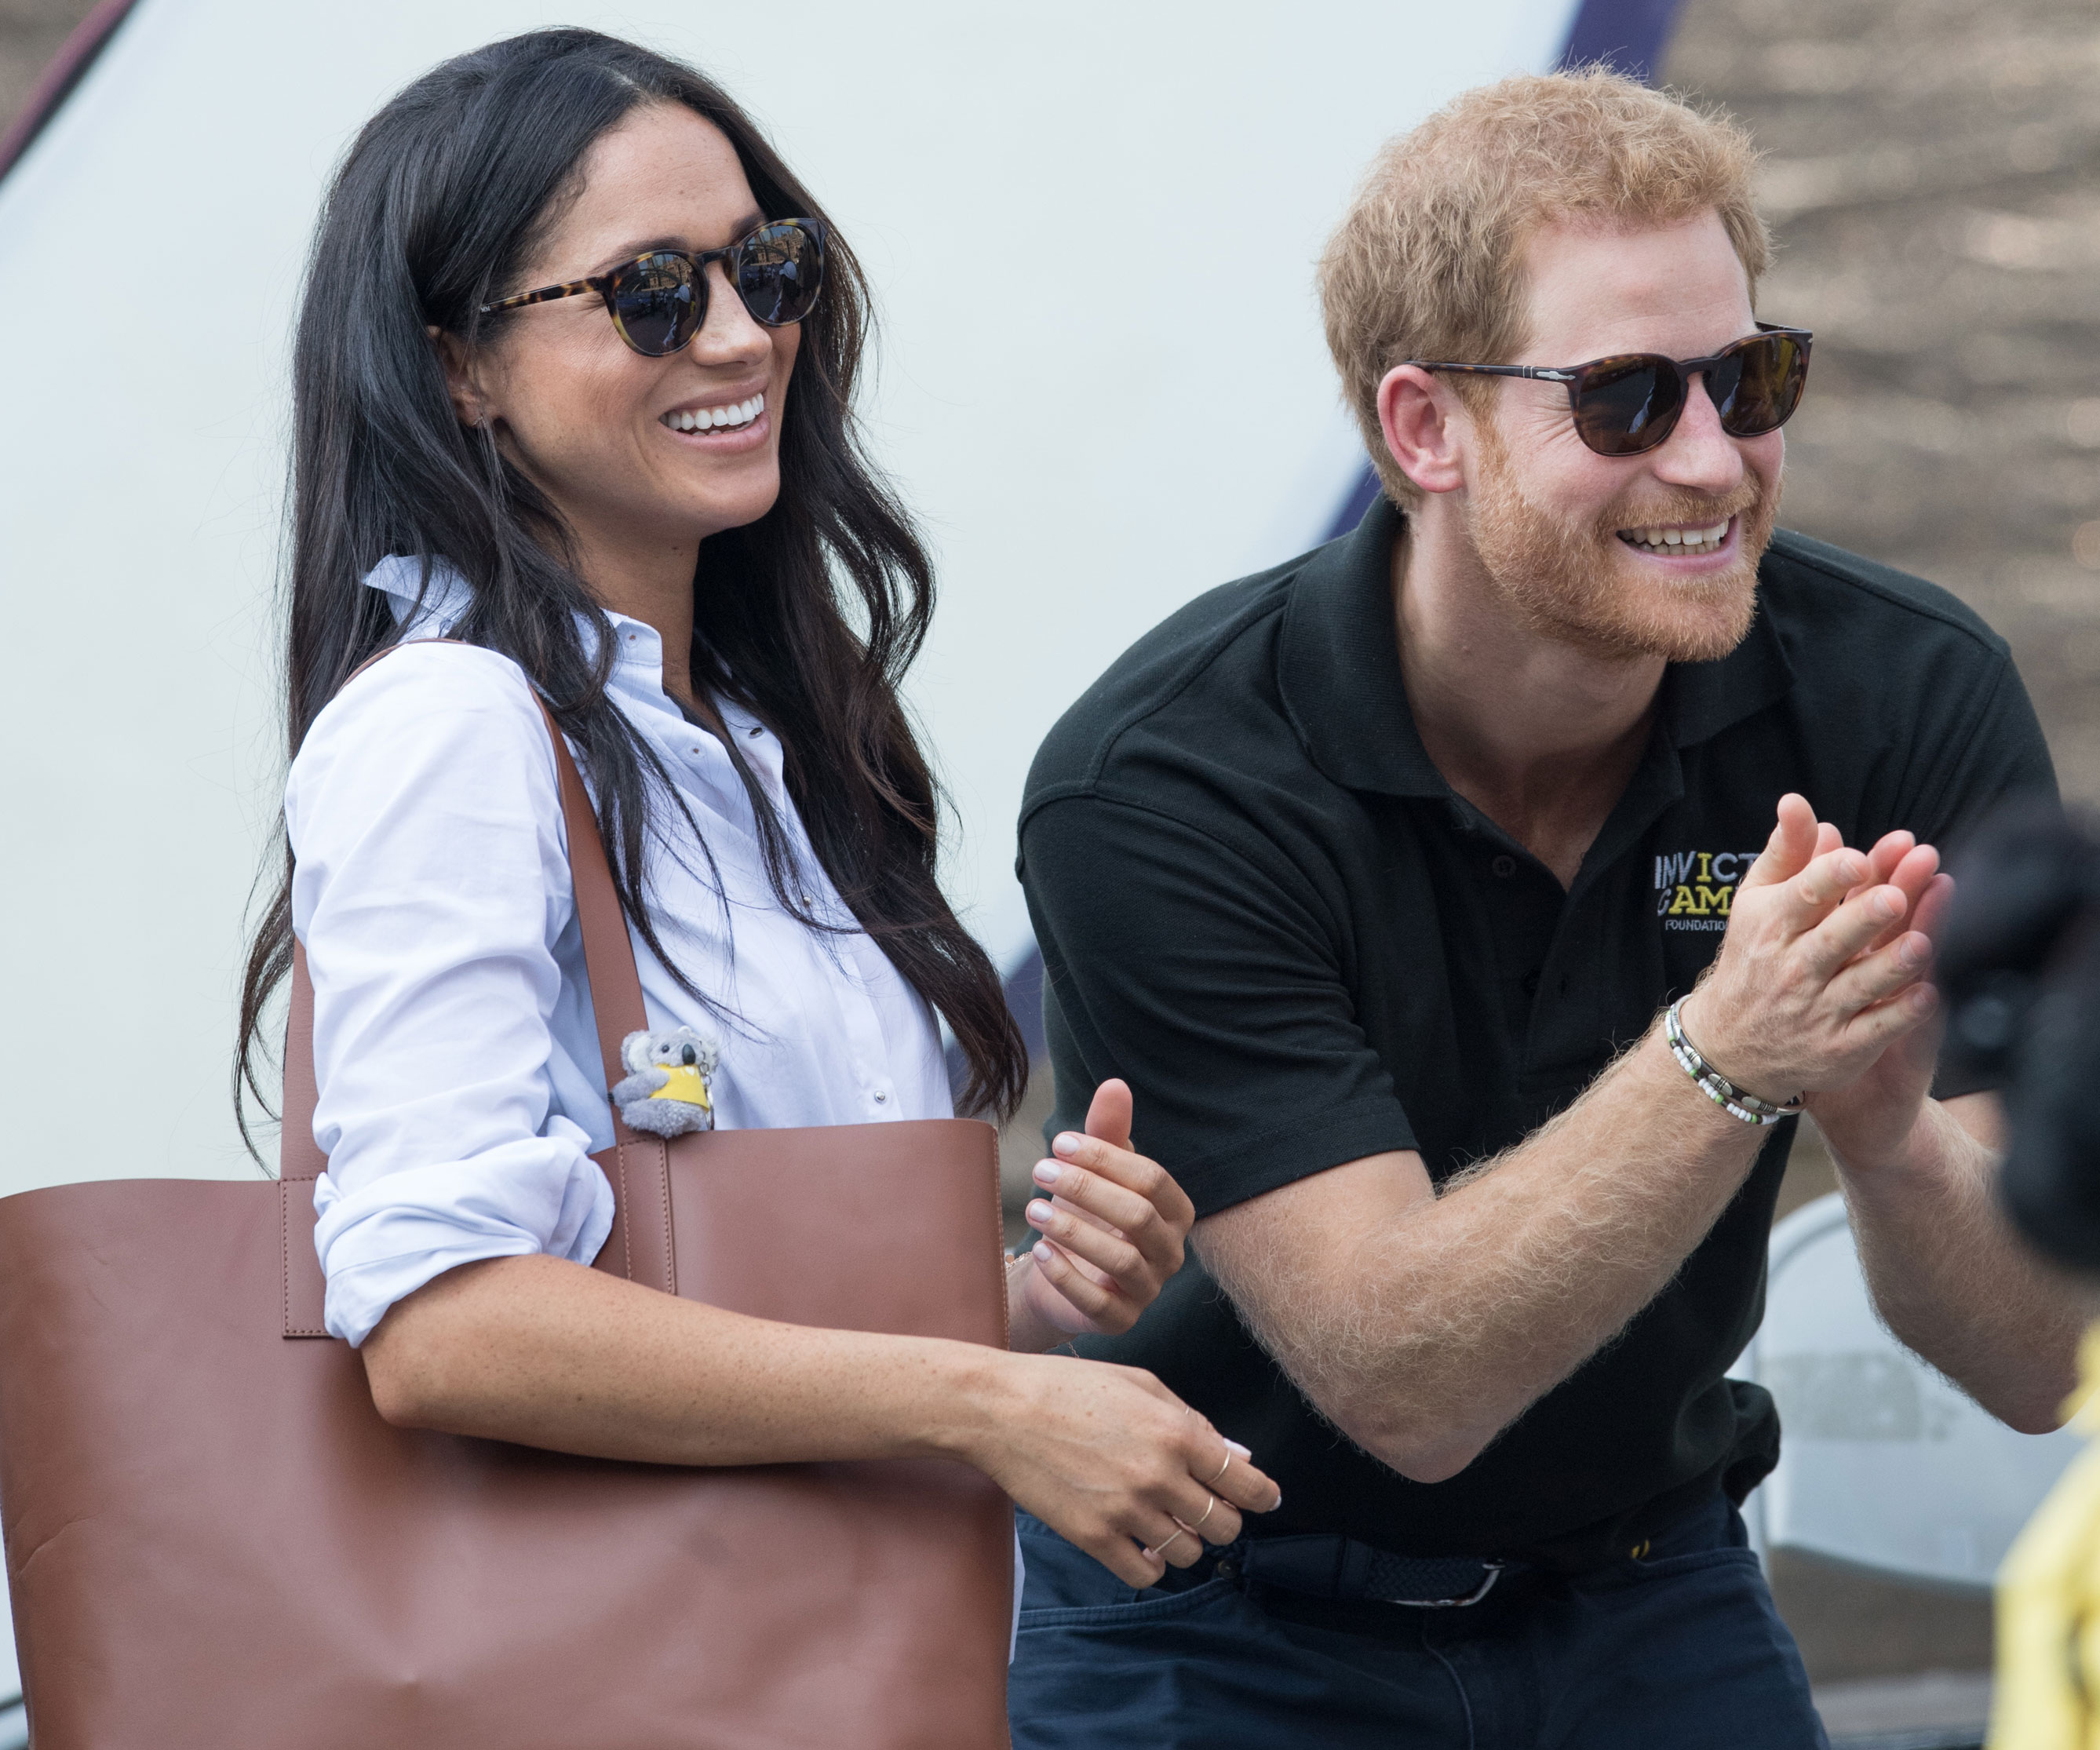 Prince Harry & Meghan Markle Make First Public Appearance Together